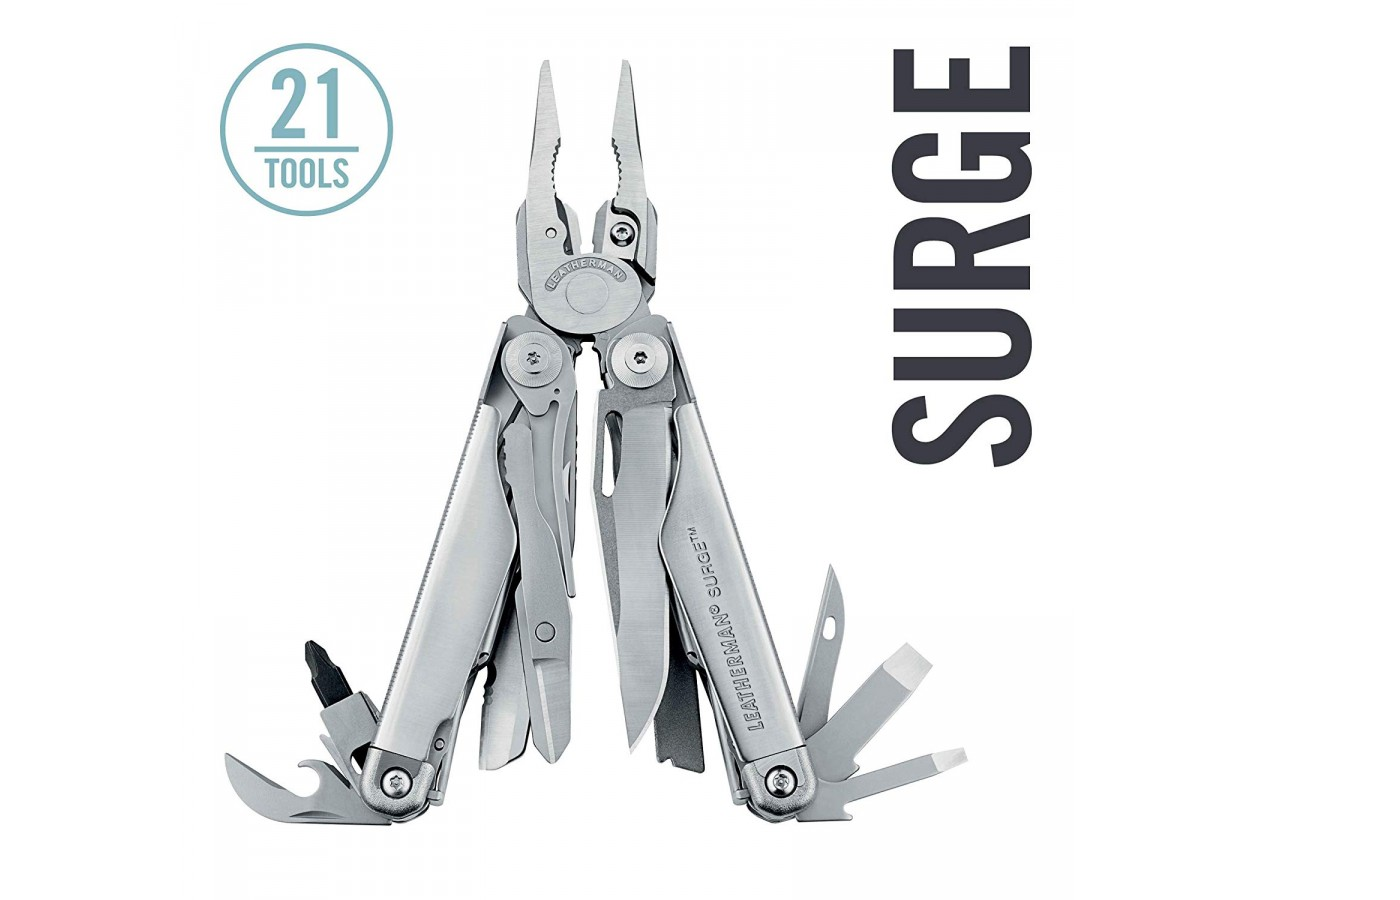 The Leatherman Surge multi-tool in stainless steel.